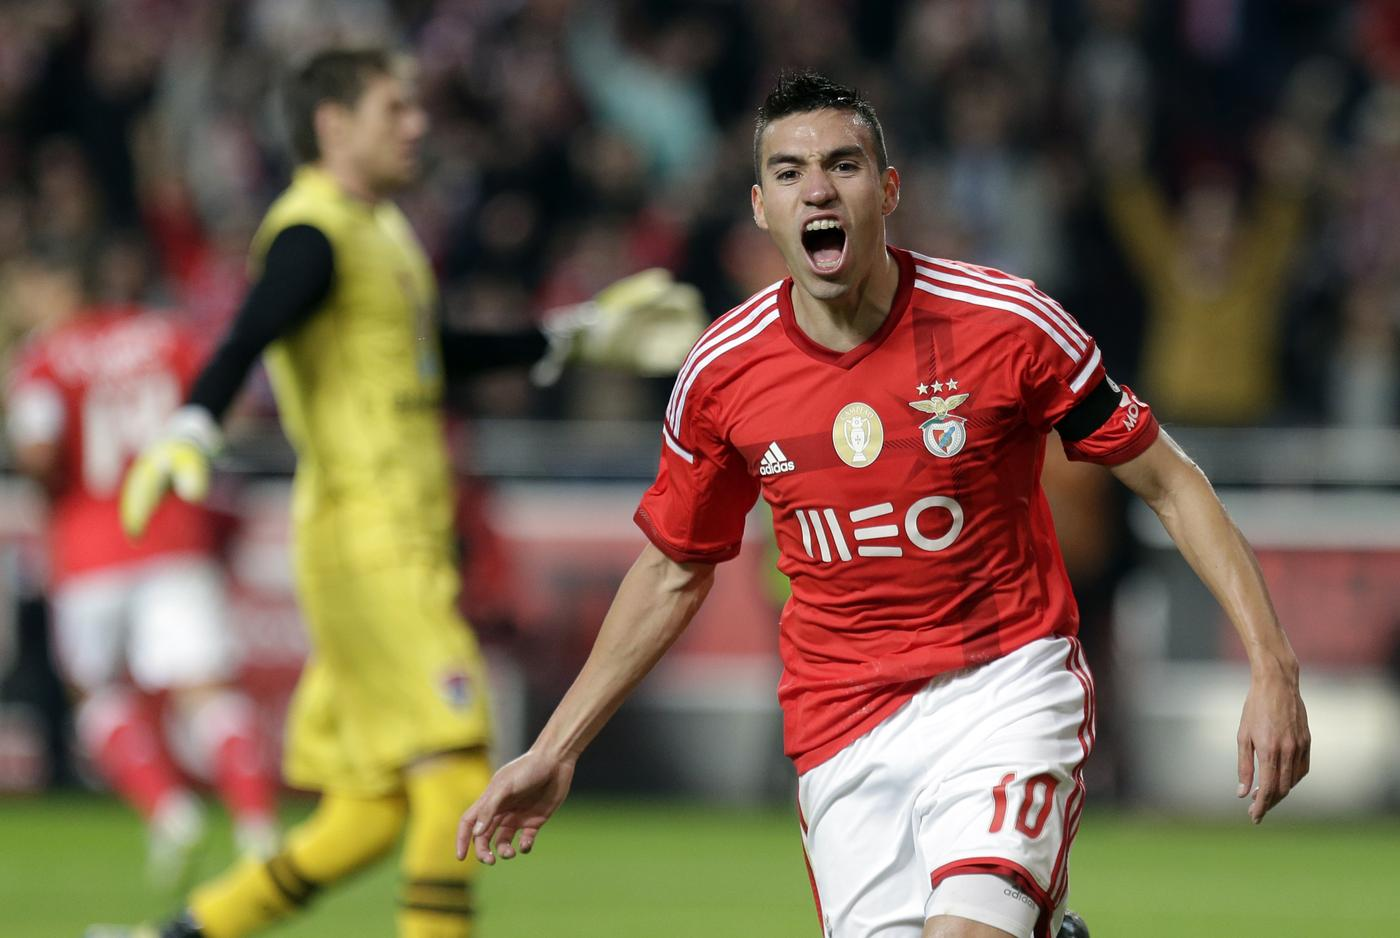 Liverpool 'plot to hijack Manchester United's transfer move for Benfica star Nicolas Gaitan'